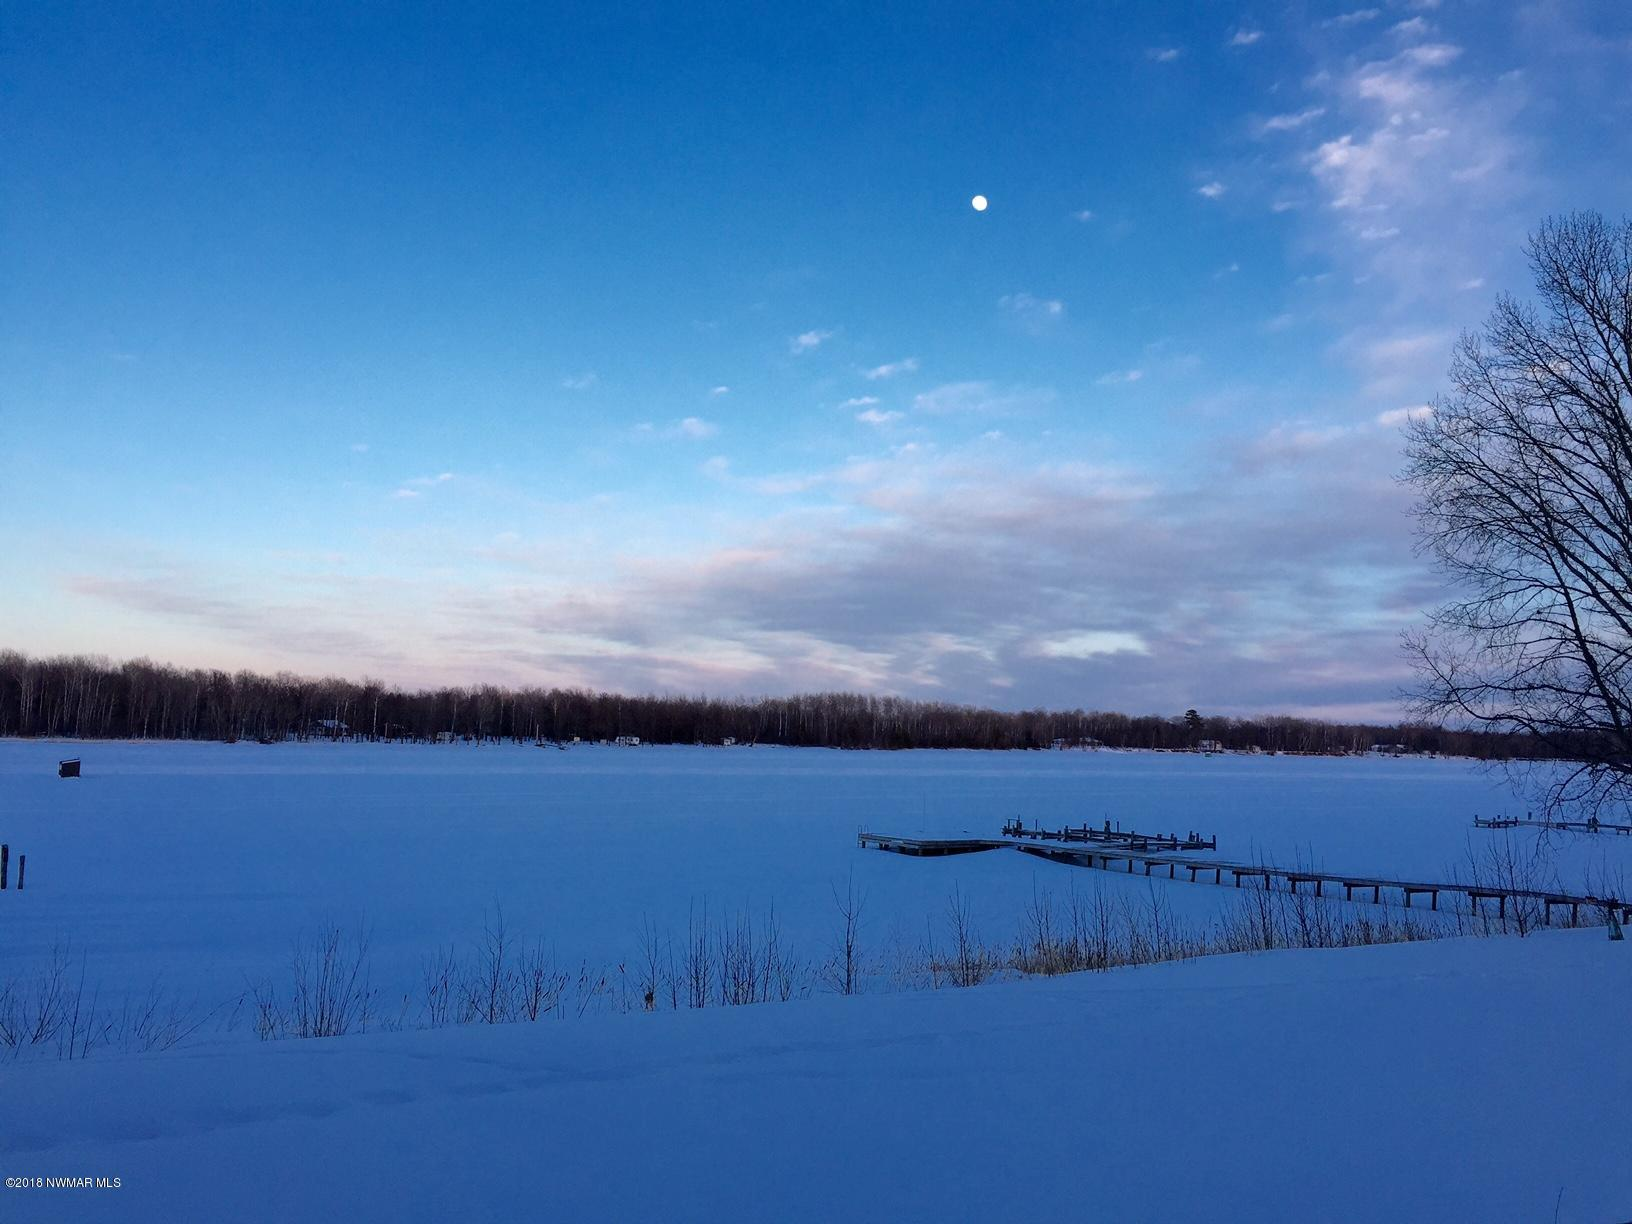 Great sunrises and moonrises over the water!